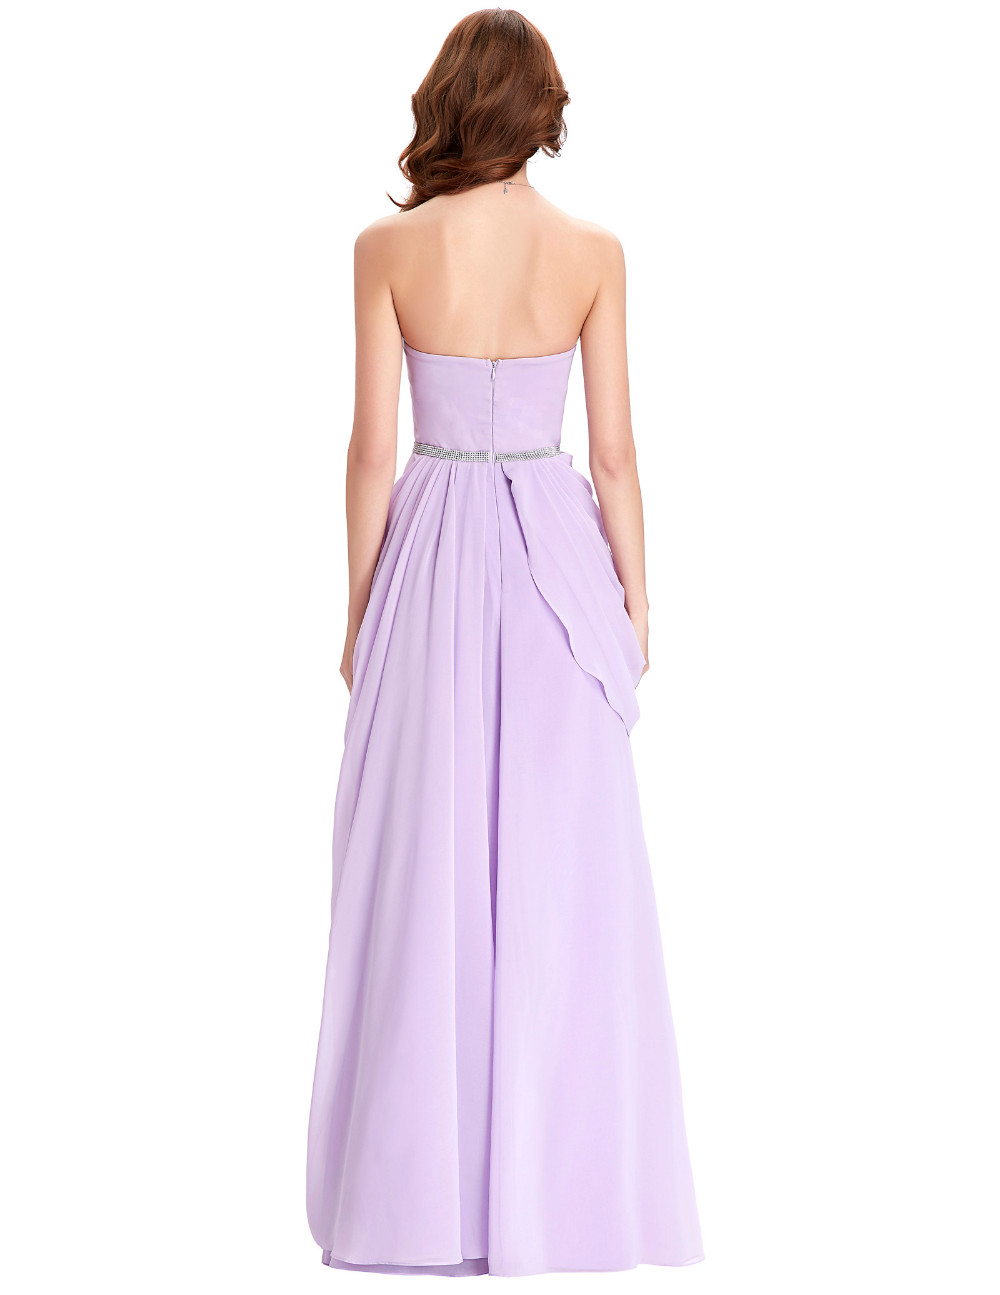 Purple Lavender Long Chiffon Floor Length Bridesmaid Dress 8